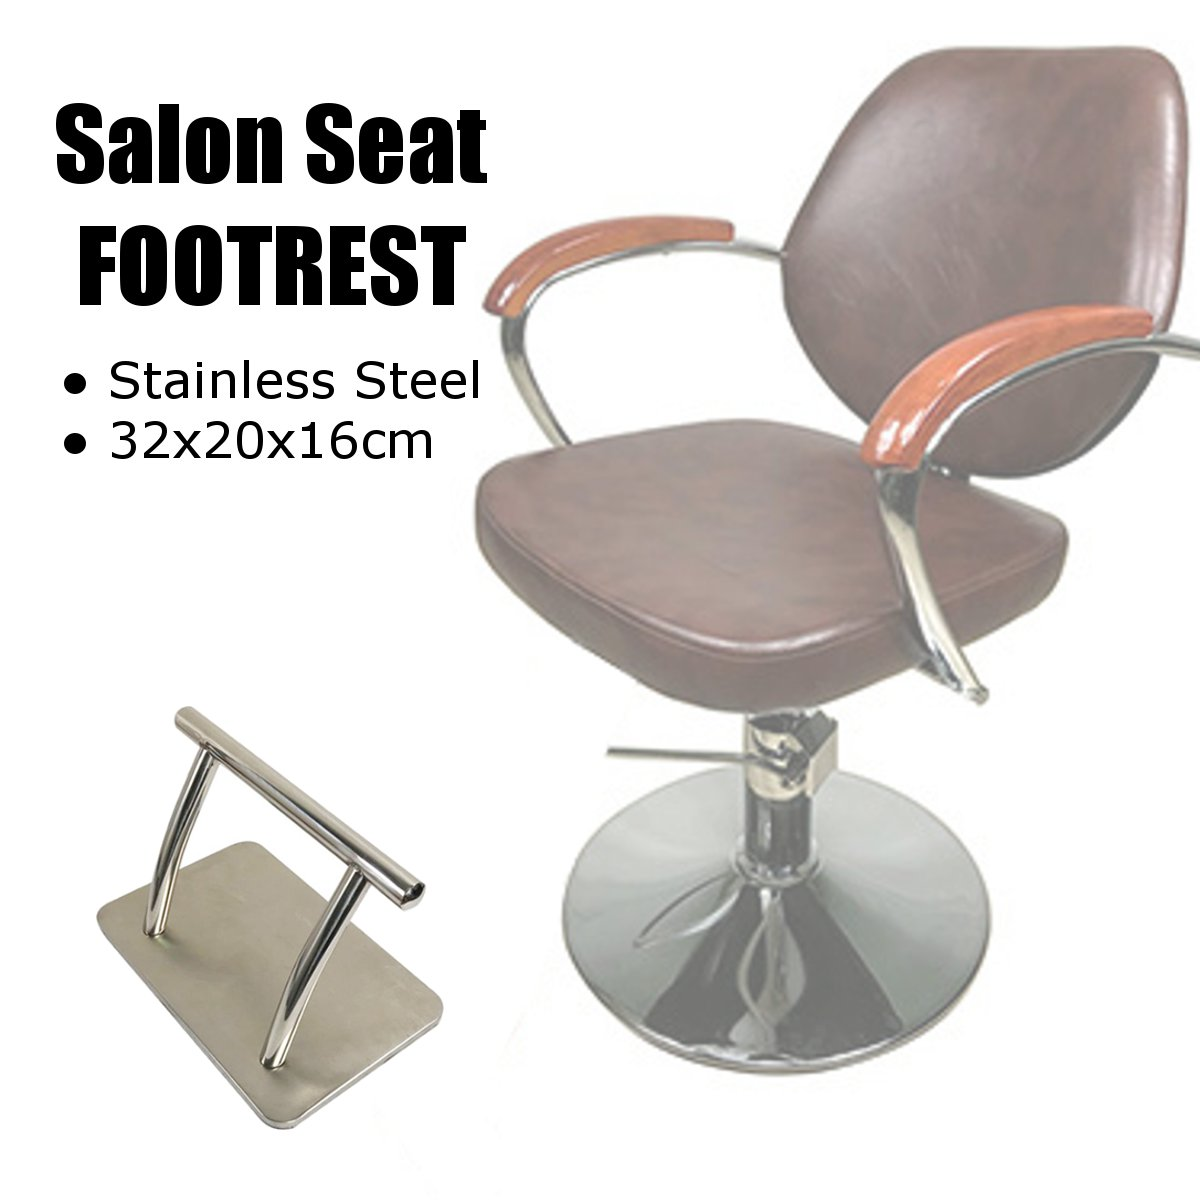 1Pcs Stainless Steel Footrest Barber Salon Tattoo Hairdressing Seat Floor Stand Non-Slip Foot Rest Furniture Parts Accessories